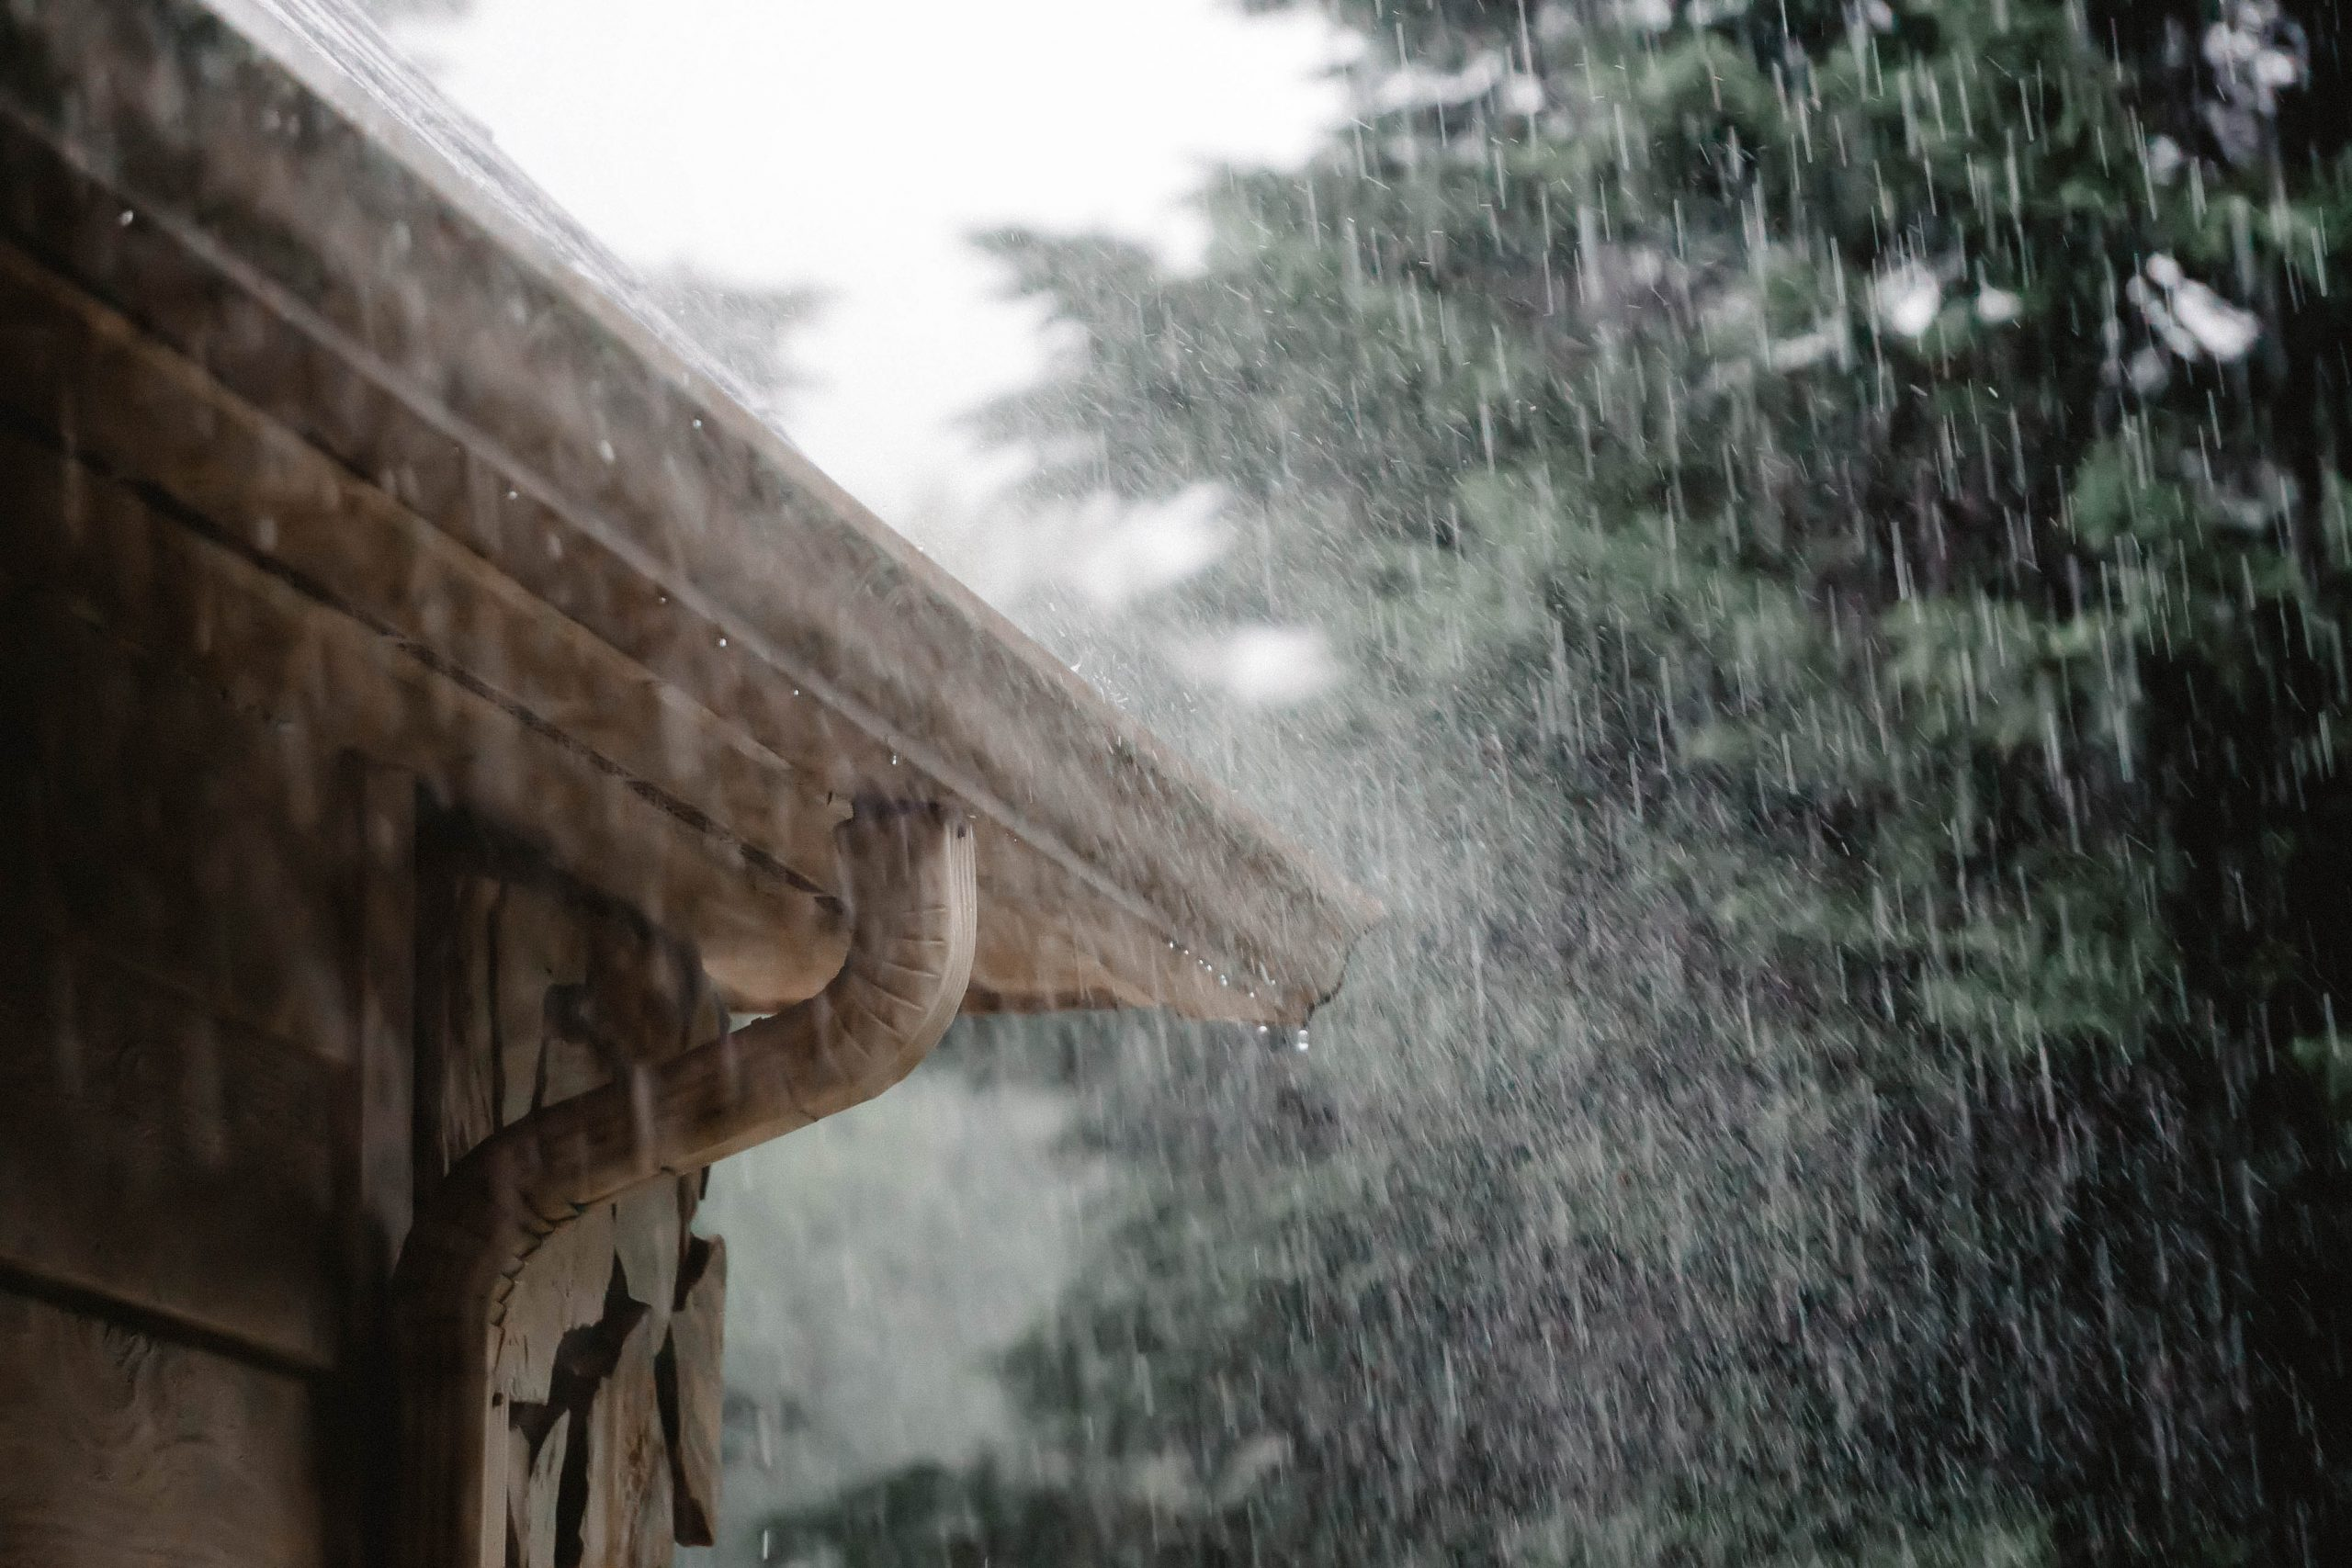 Rain falling on a roof to illustrate that screw piles can be installed in the rain.